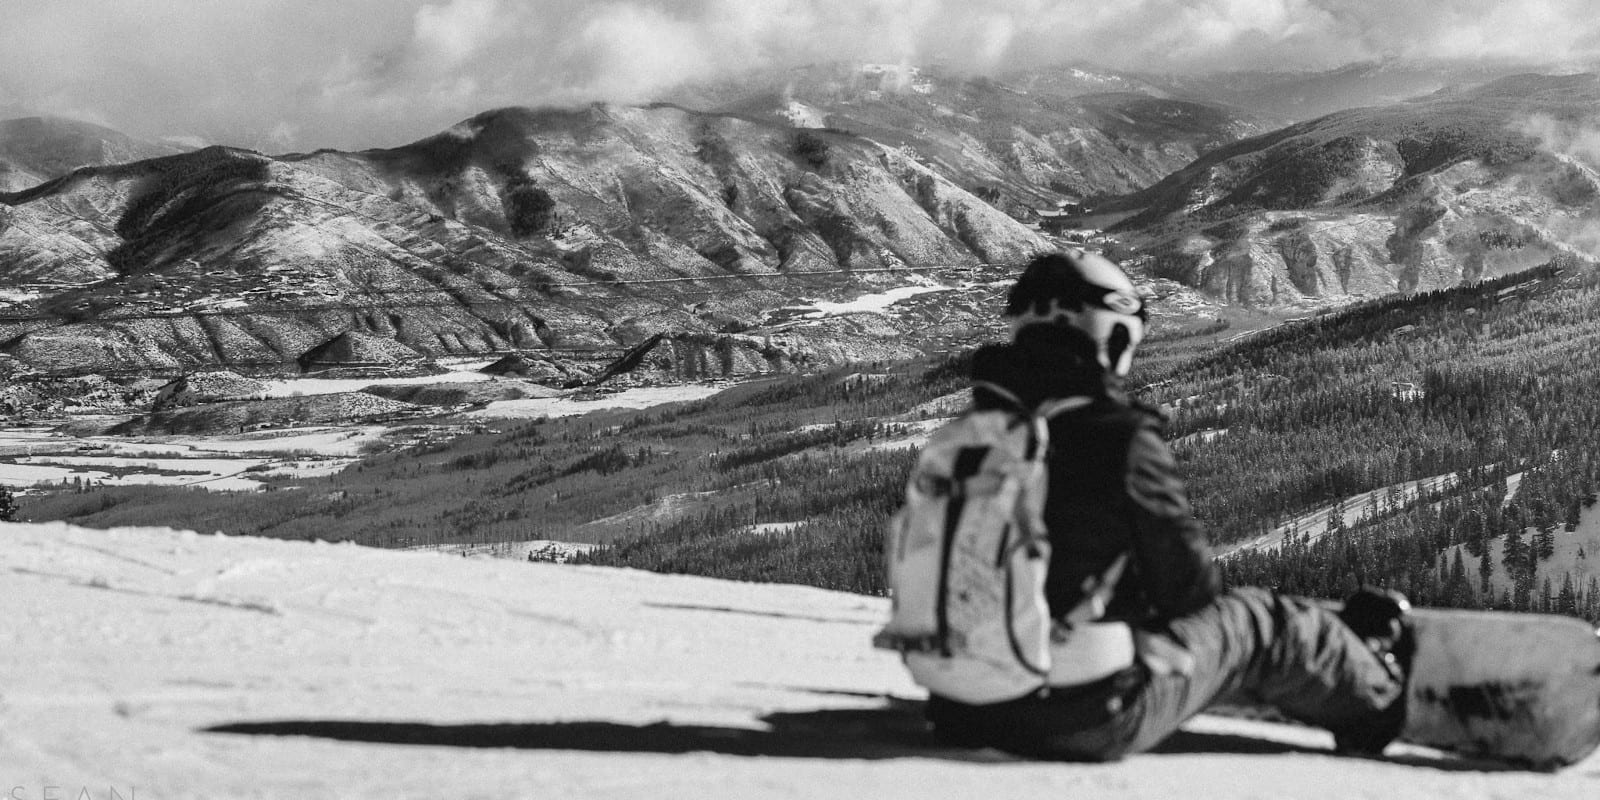 Colorado Ski Resort Snowmass Mountain Introspective